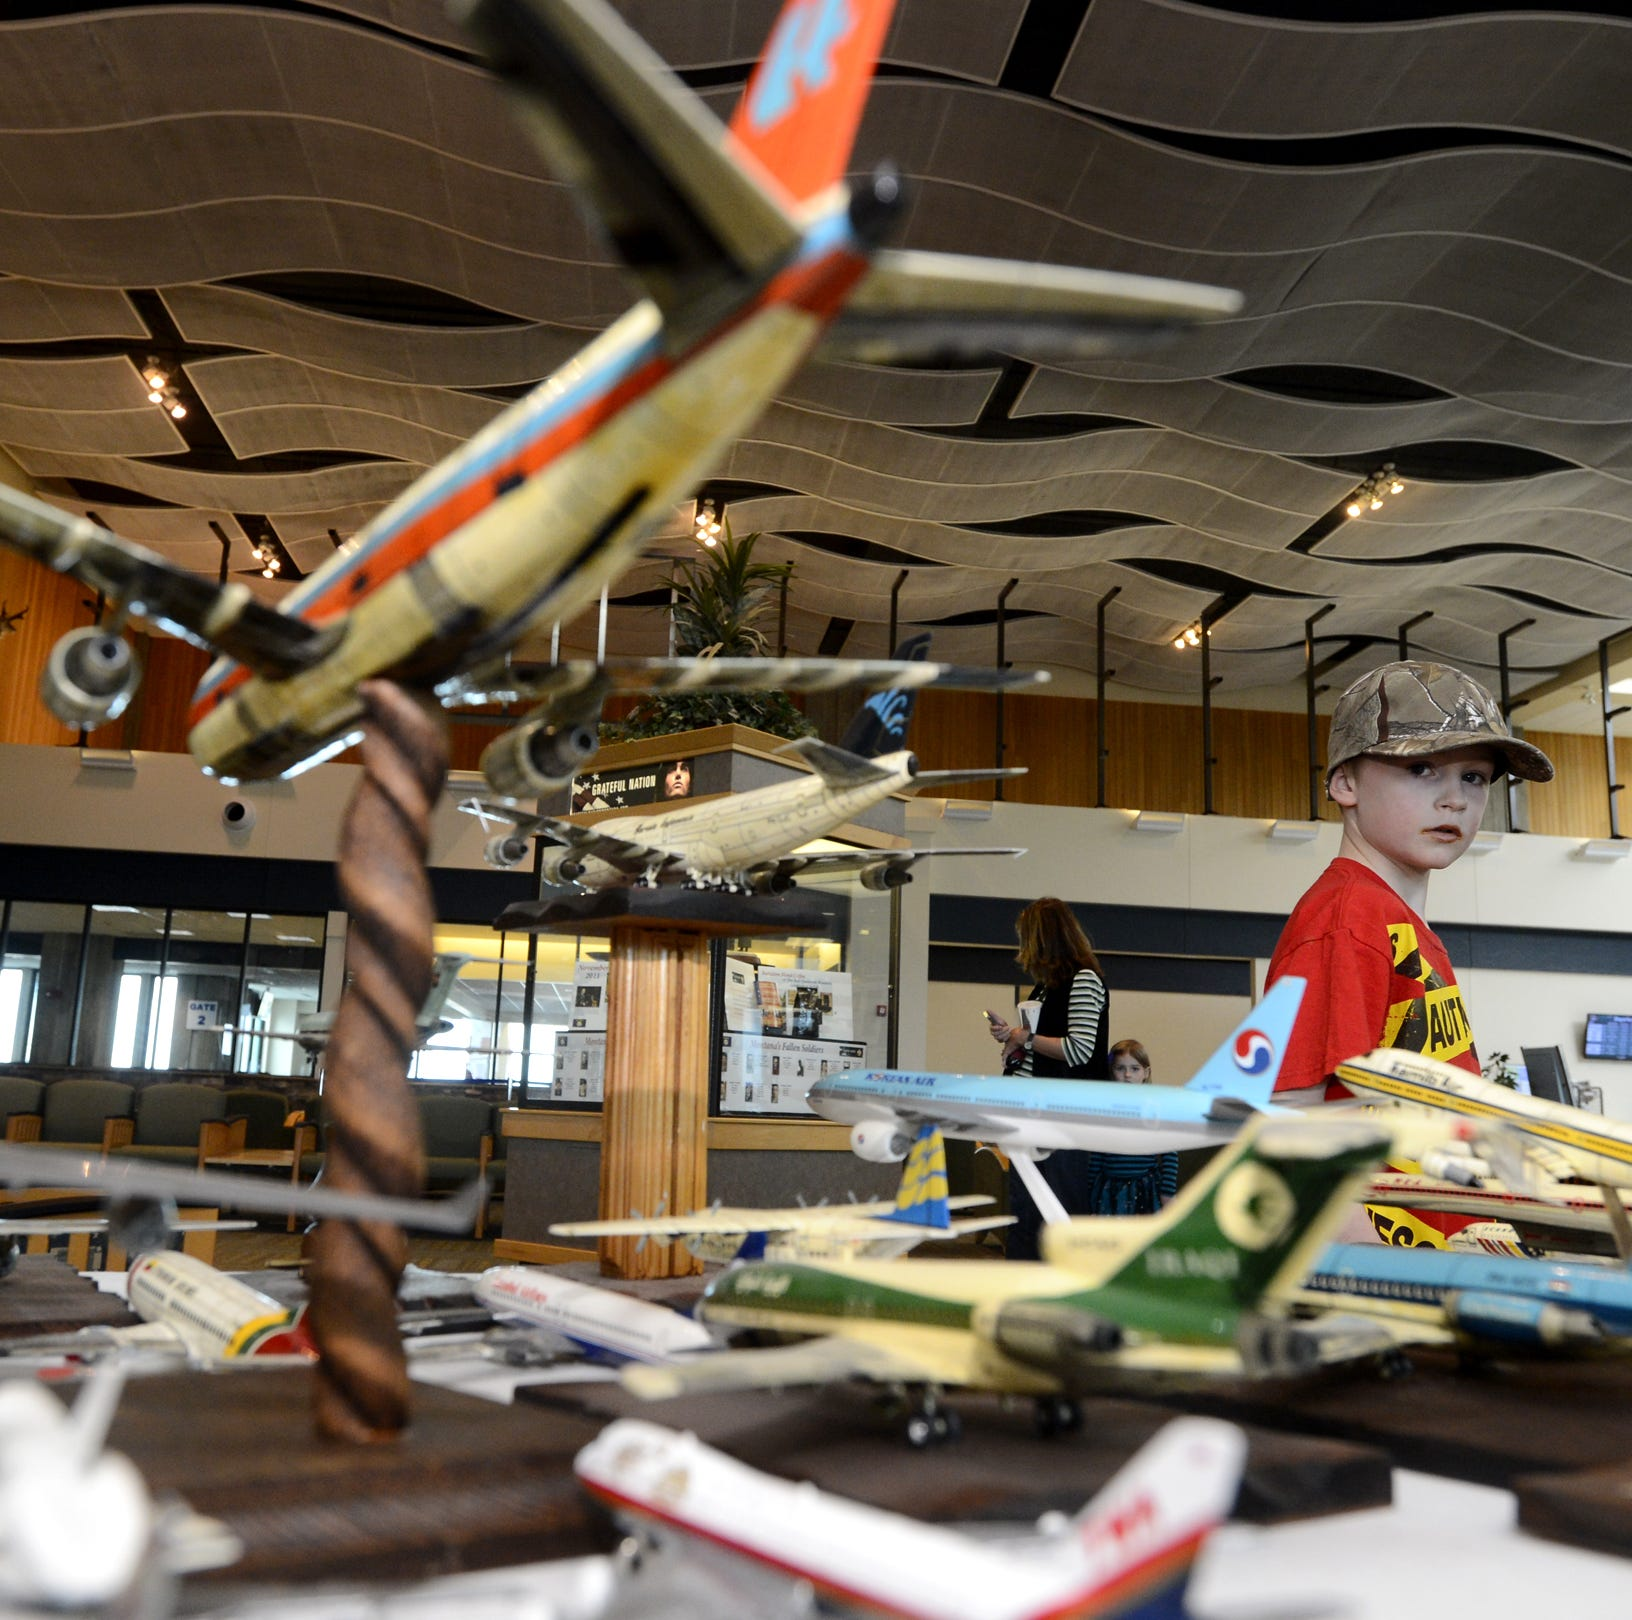 Mansch: Poletto Collection a bit of a hidden treasure at Great Falls airport